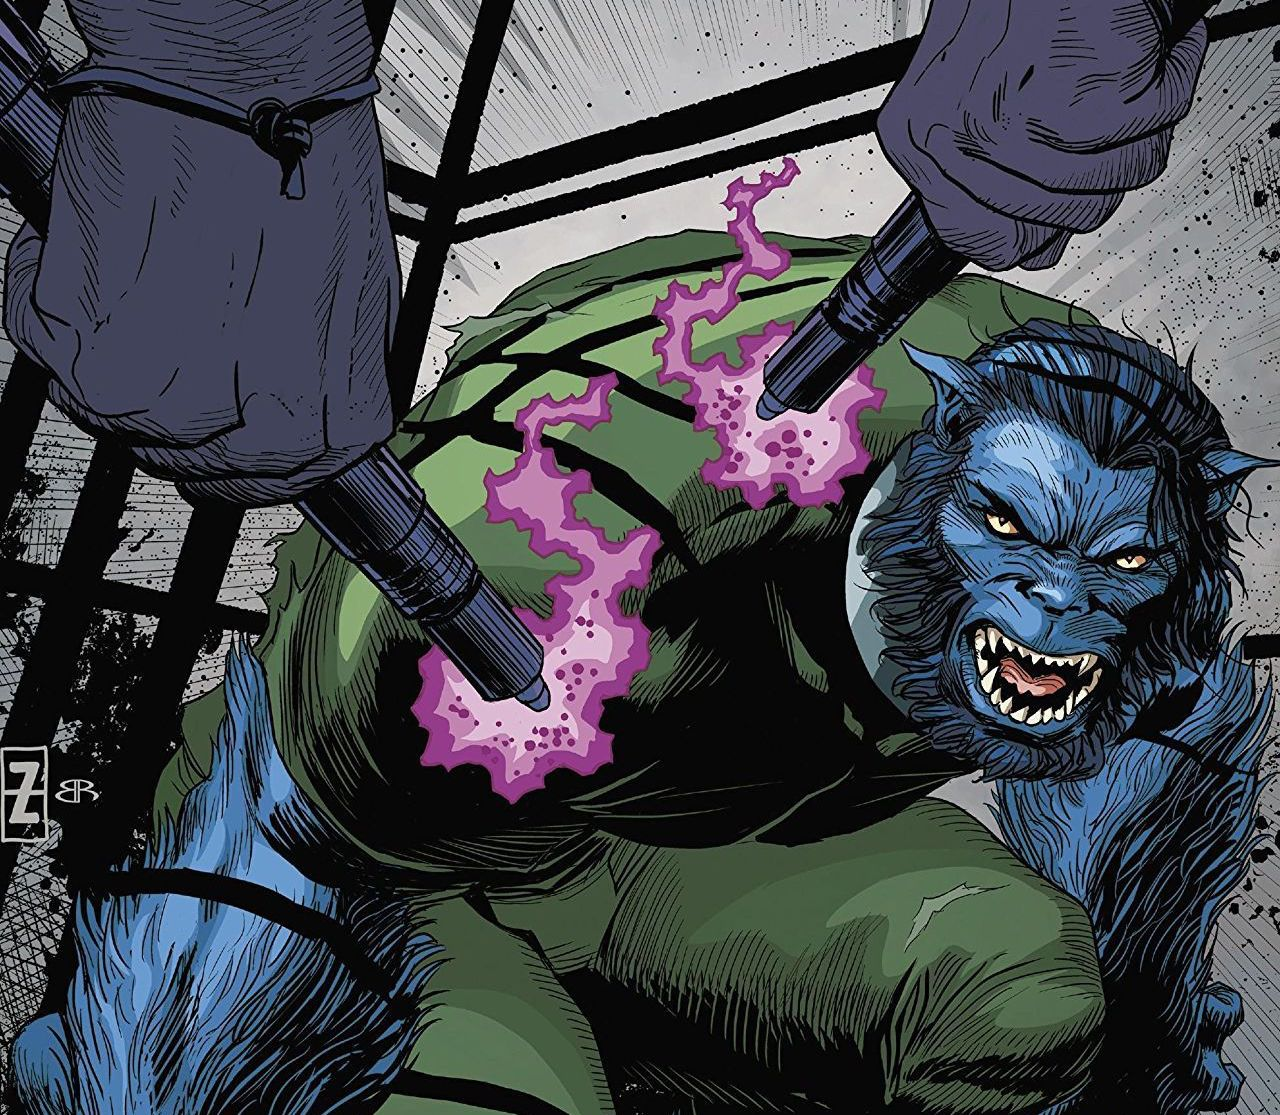 A major mutant enters the Age of X-Man in Prisoner X #3